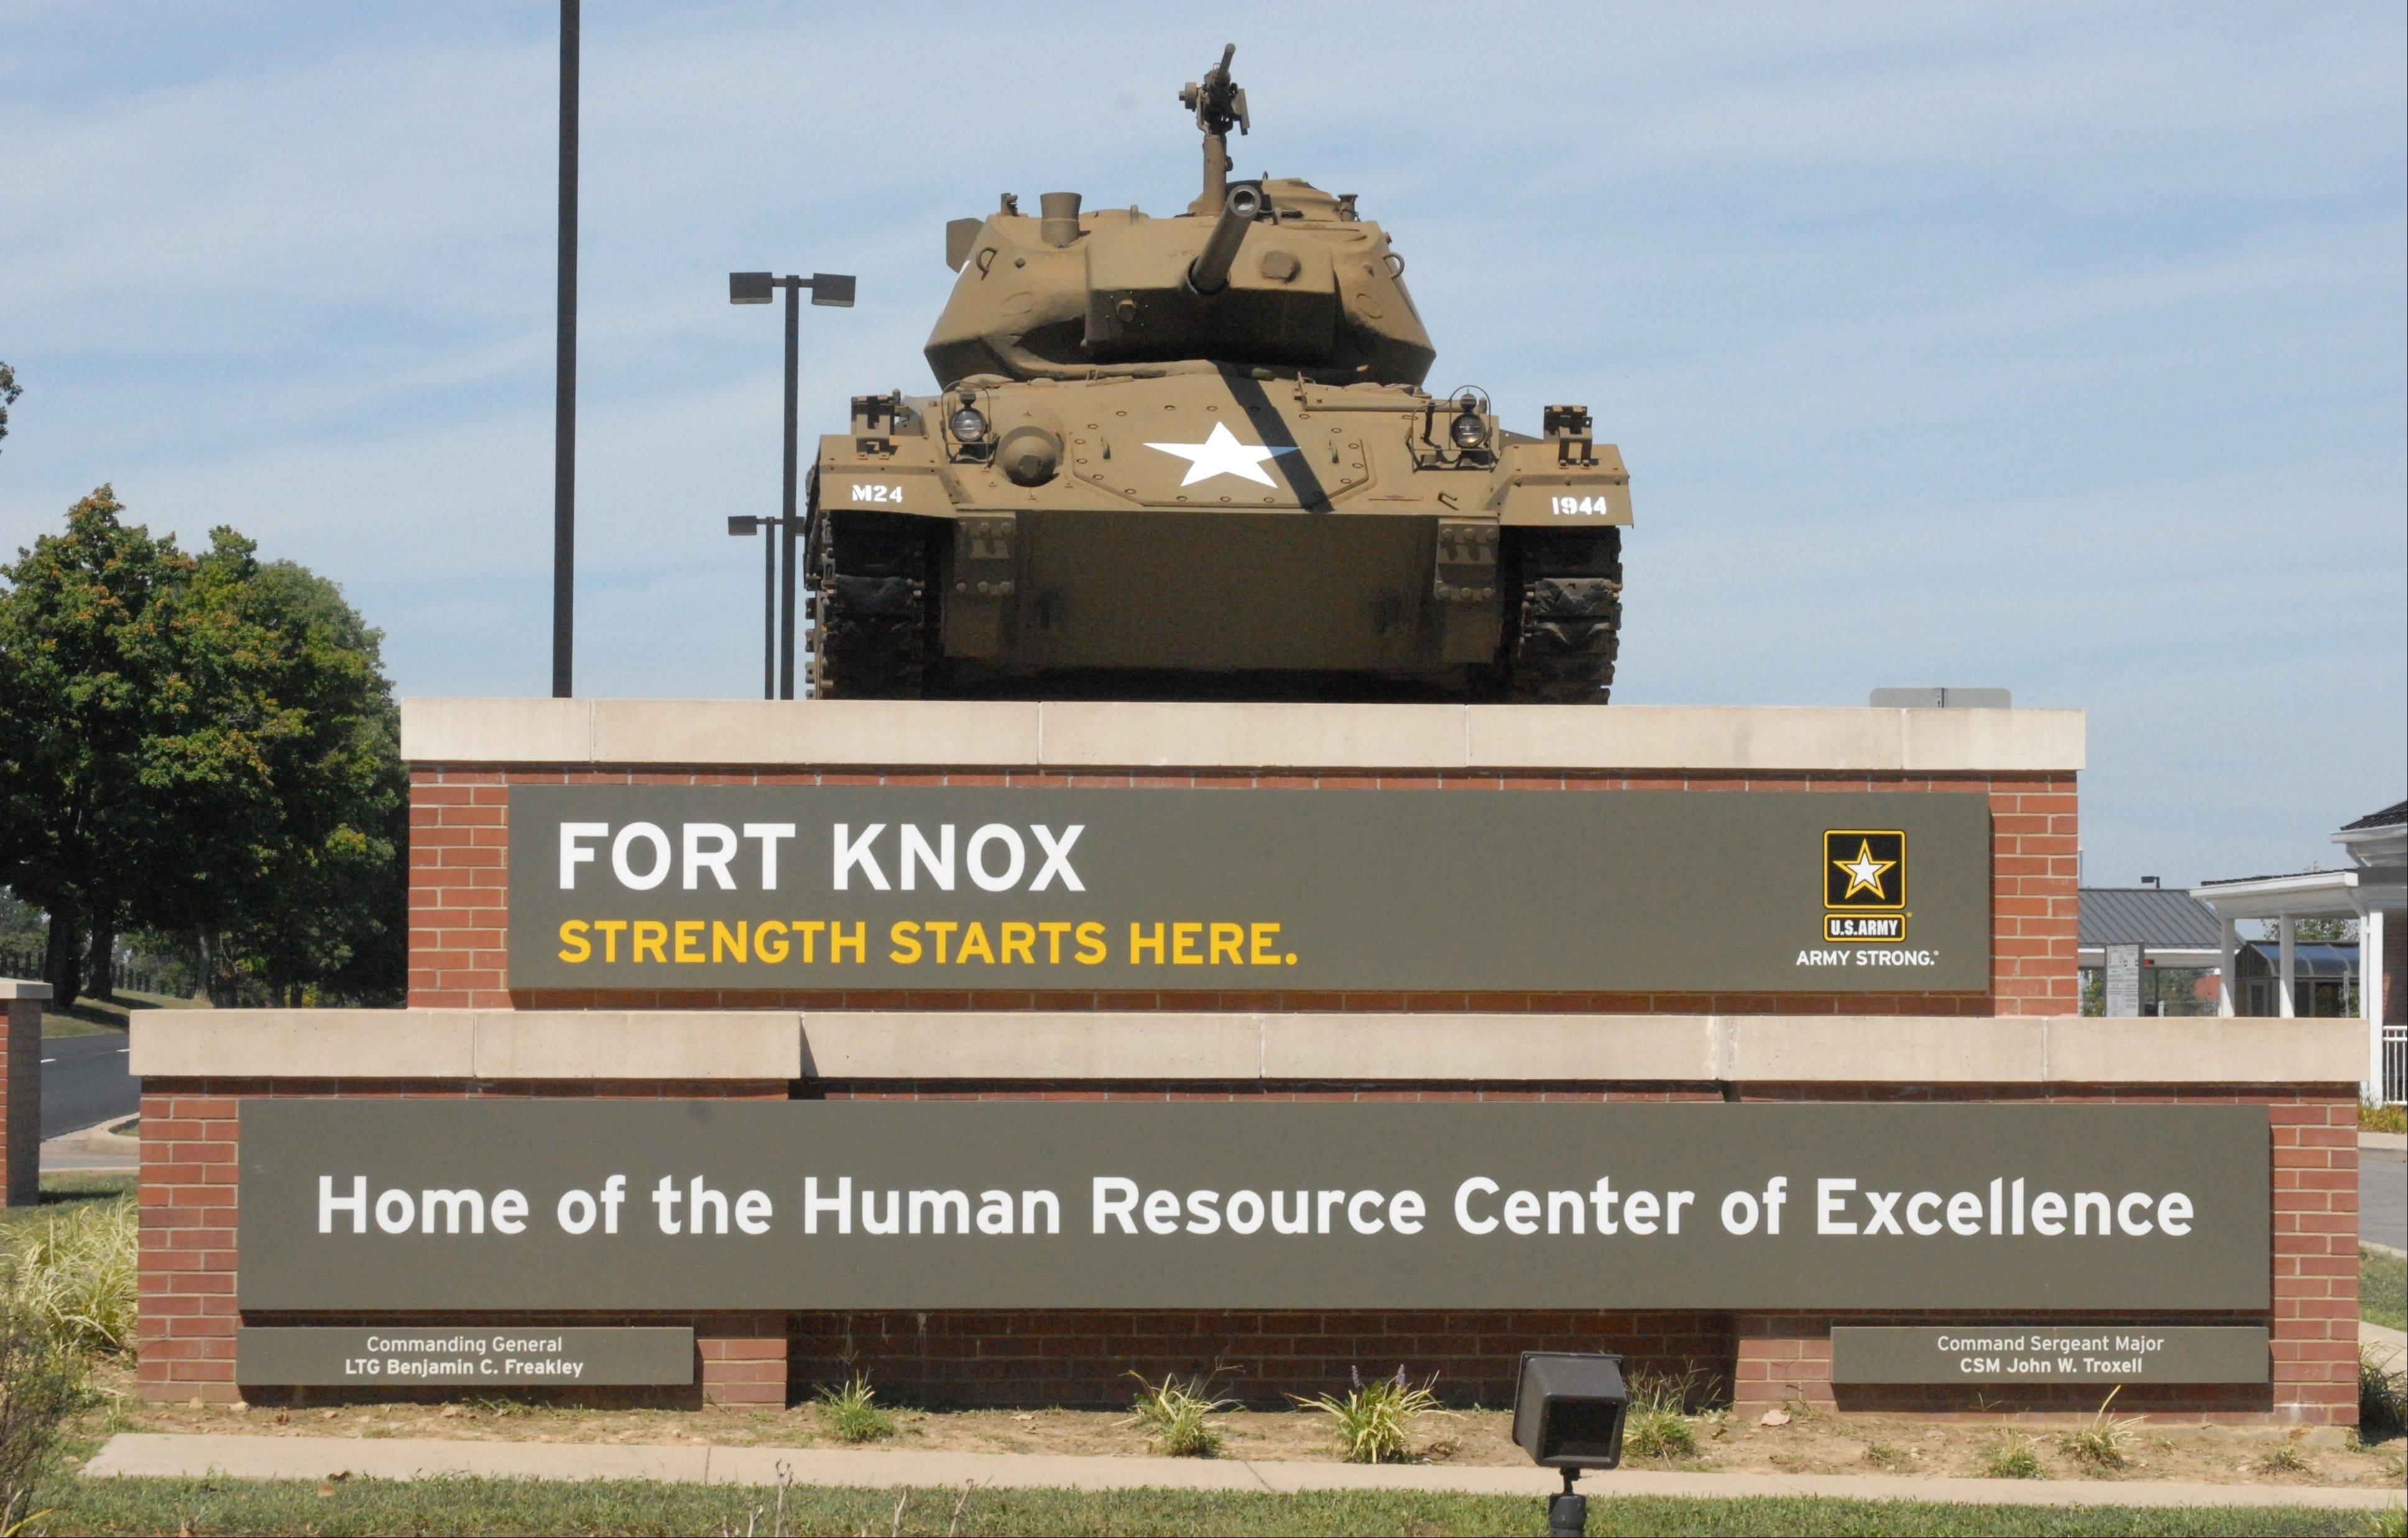 An Army civilian employee was shot and killed in a parking lot at Kentucky's Fort Knox on Wednesday, and investigators were seeking to question a man in connection with the shooting, authorities said.